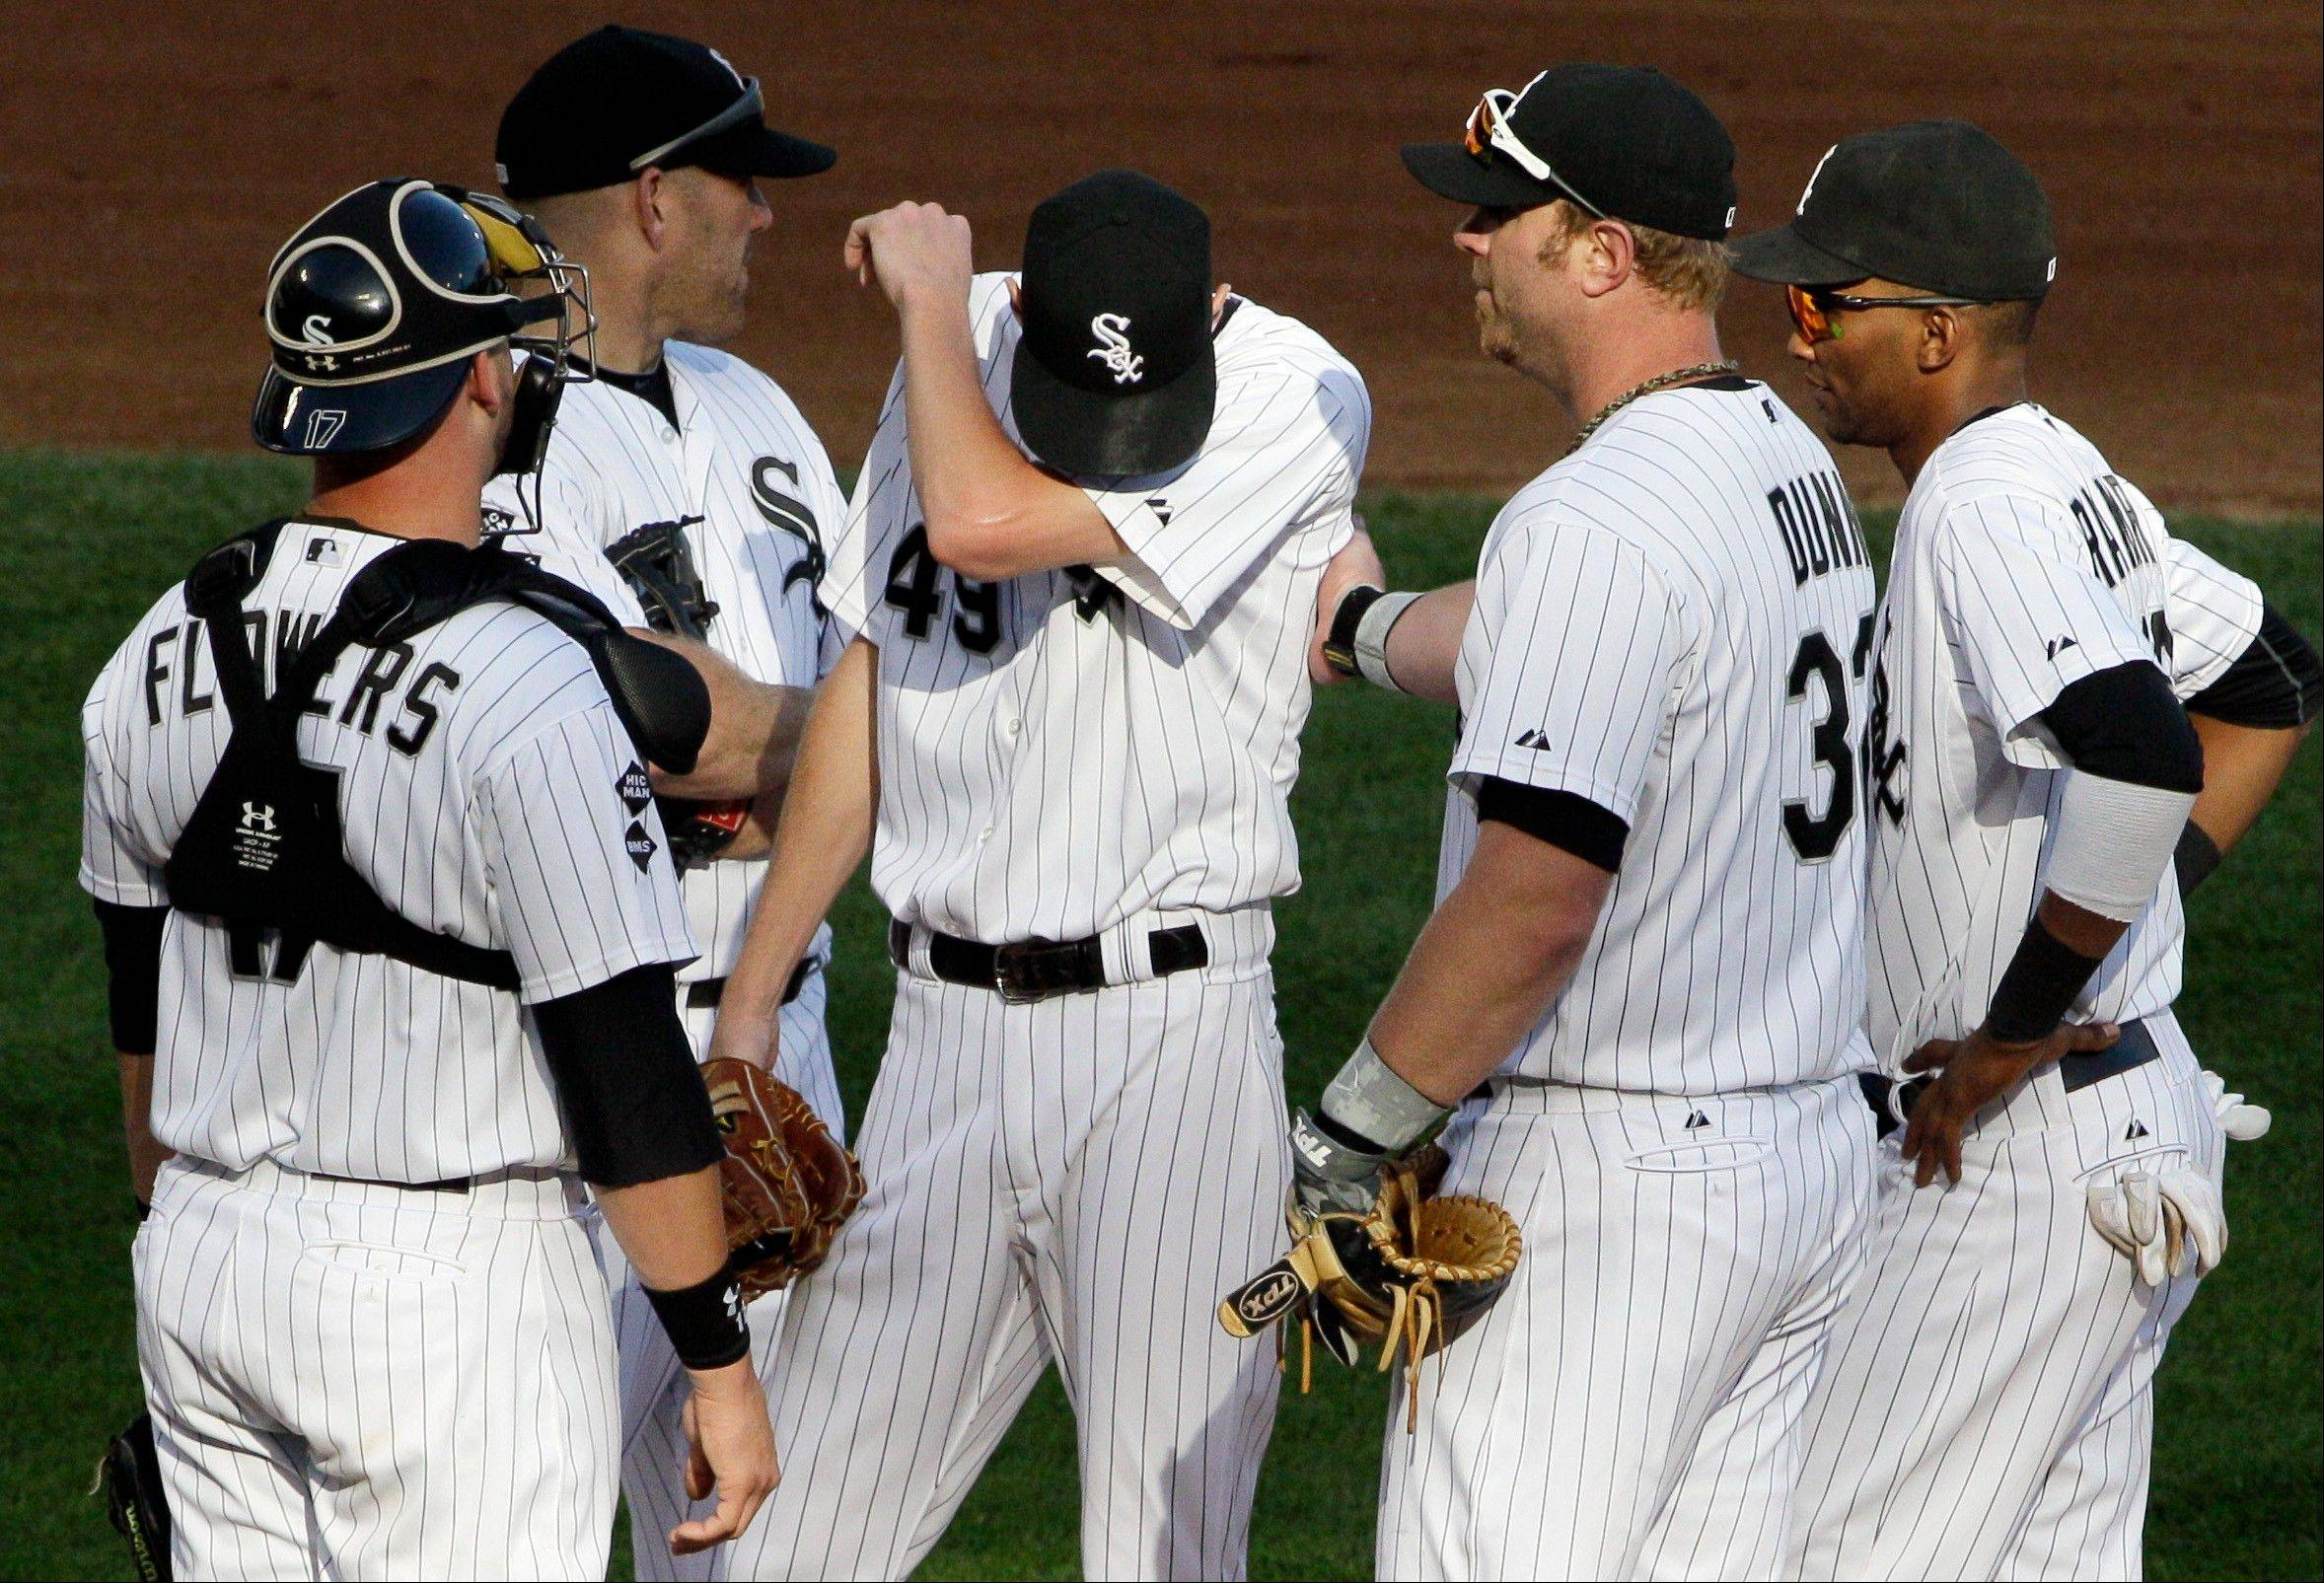 White Sox starter Chris Sale, middle, wipes his face Saturday as catcher Tyler Flowers (17), third baseman Kevin Youkilis (20), first baseman Adam Dunn (32) and shortstop Alexei Ramirez (10) react after Tampa Bay Rays' B.J. Upton hit a one-run single during the fourth inning.